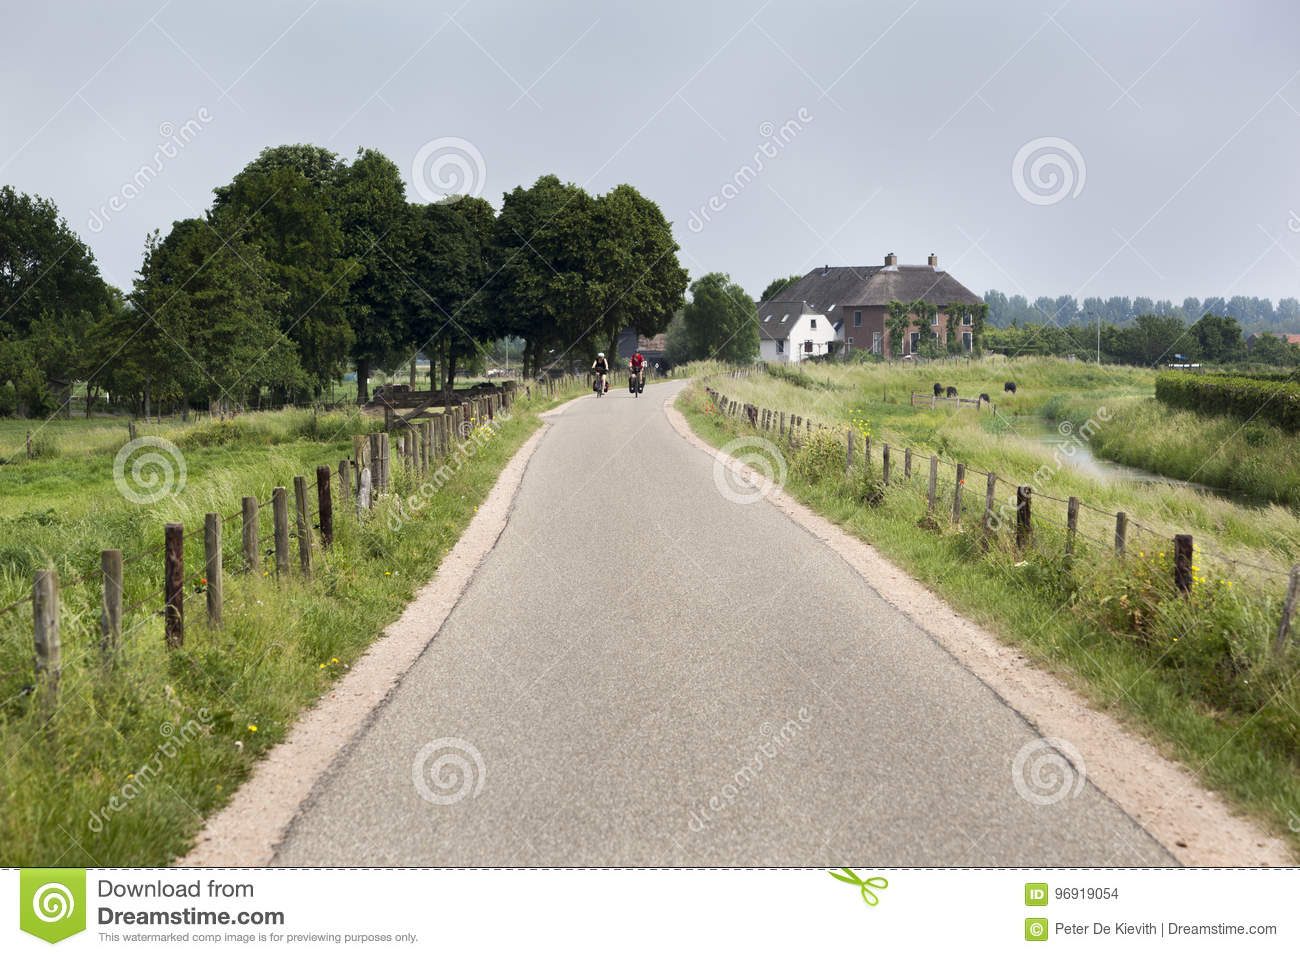 Country road with bikers in the distance